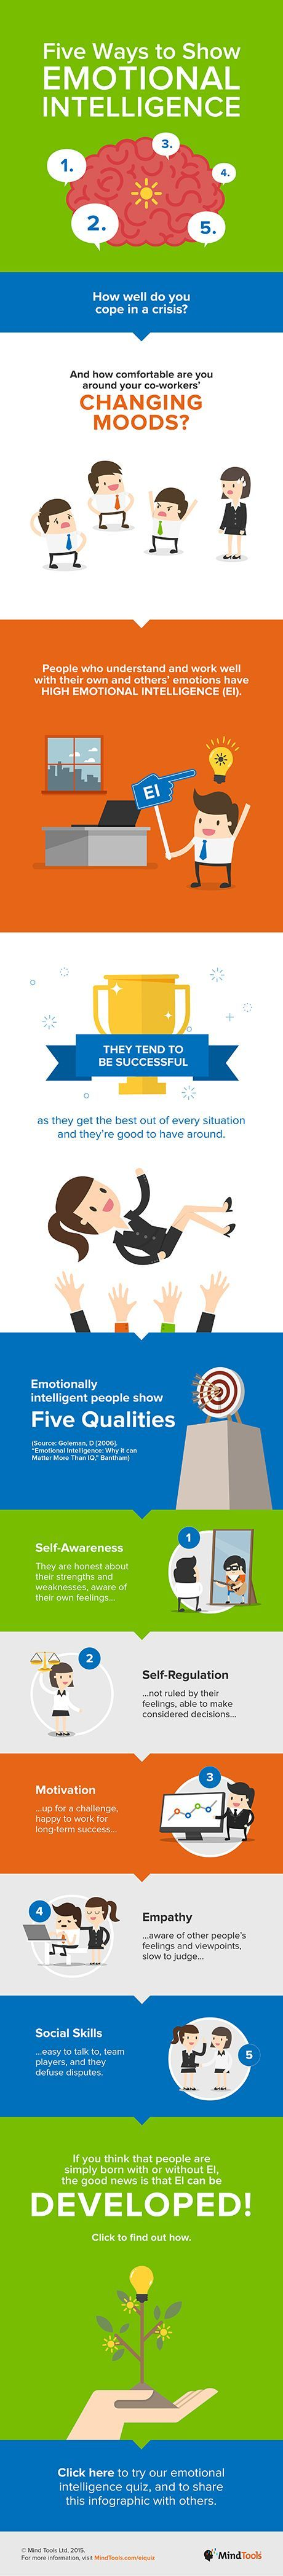 Five Ways to Show Emotional Intelligence Infographic is part of Emotional intelligence, Emotions, Emotional inteligence, Psychology, Social intelligence, People skills - Grow Your SelfAwareness, DecisionMaking and Team Work by Using 0ur Infographic and Quiz